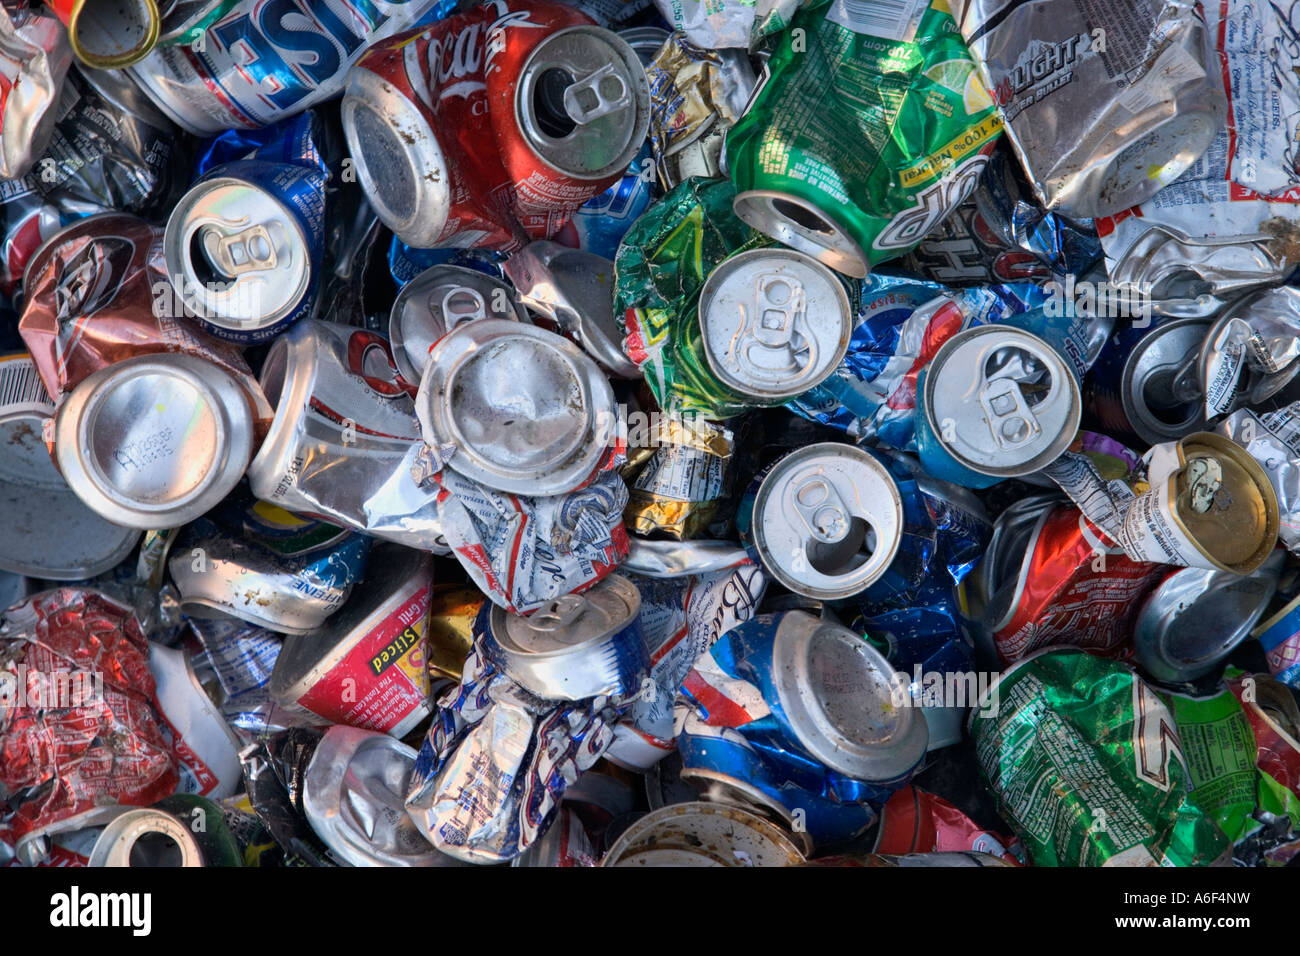 Crushed aluminum cans piled for recycling, - Stock Image